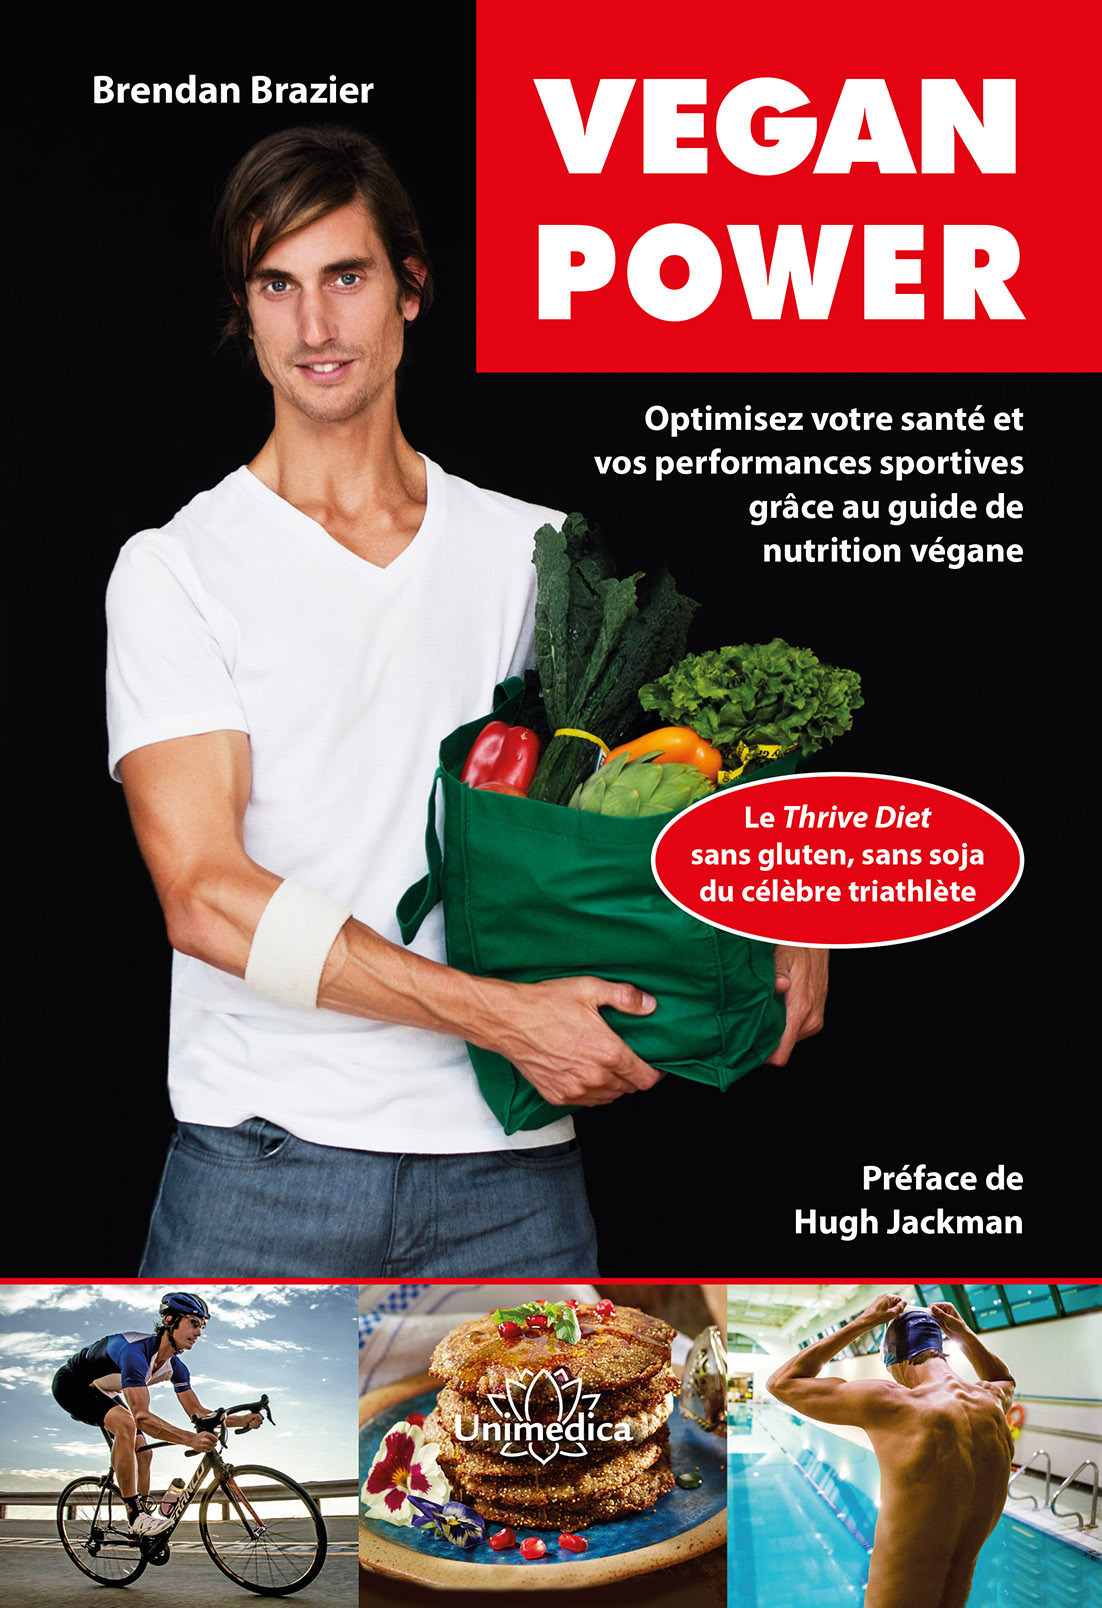 VEGAN POWER - OPTIMISEZ VOTRE SANTE ET VOS PERFORMANCES SPORTIVES GRACE AU GUIDE DE NUTRITION VEGANE